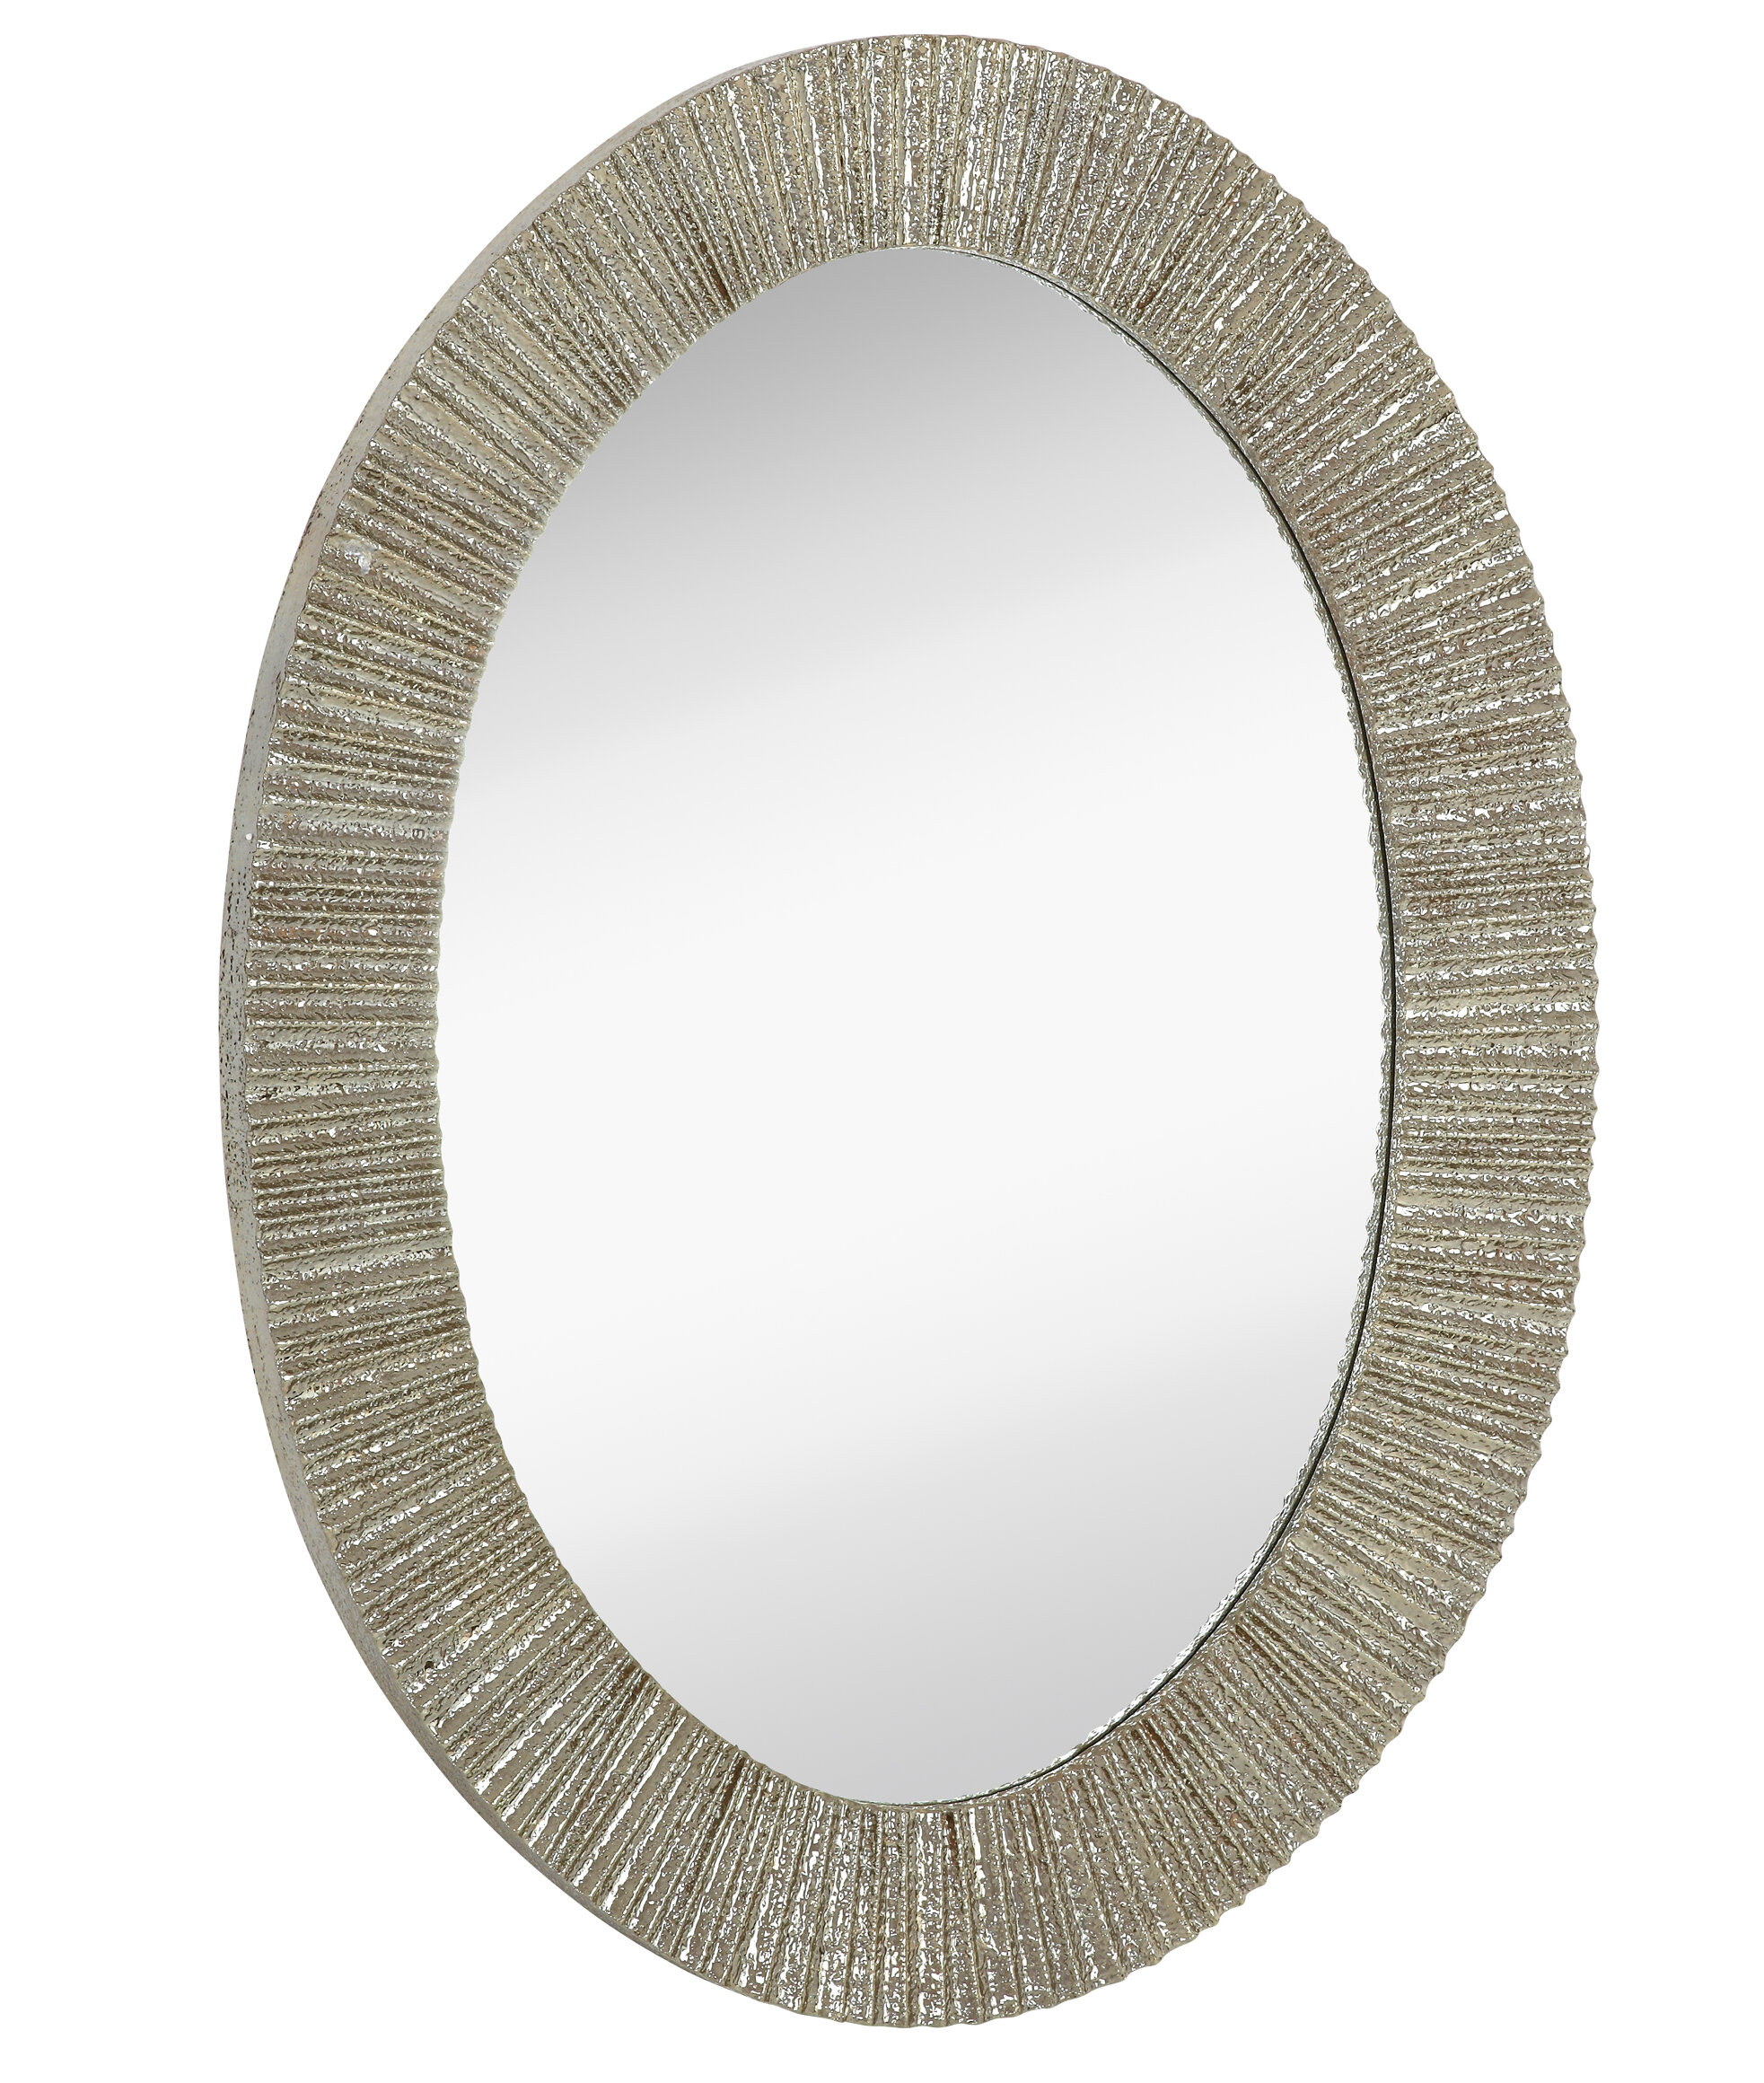 Majestic Mirror Contemporary Oval Shaped Shiny Polished Pewter ...